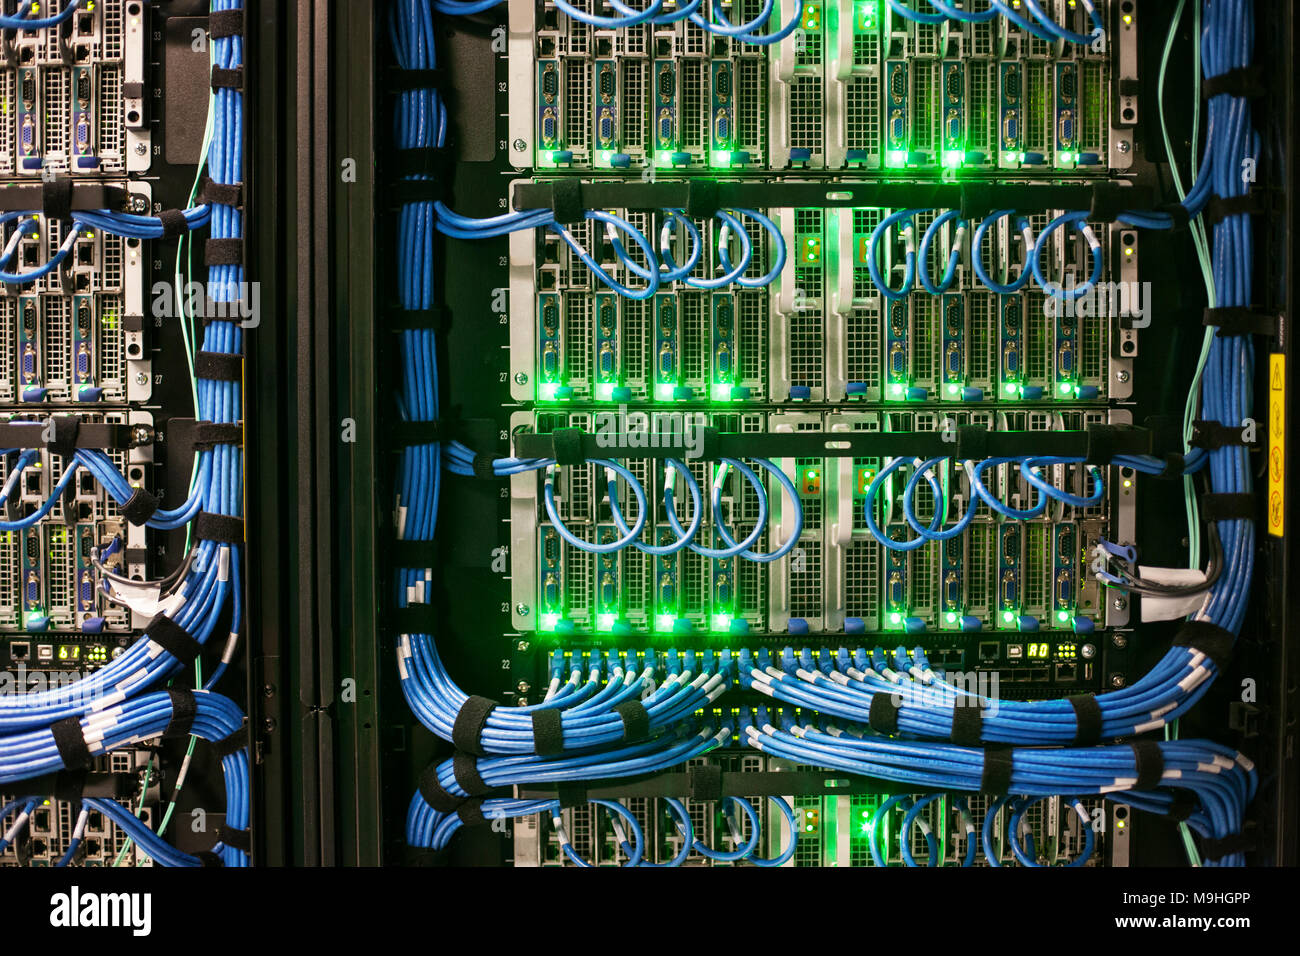 Servers with CAT 5 cables on racks in a large computere server farm